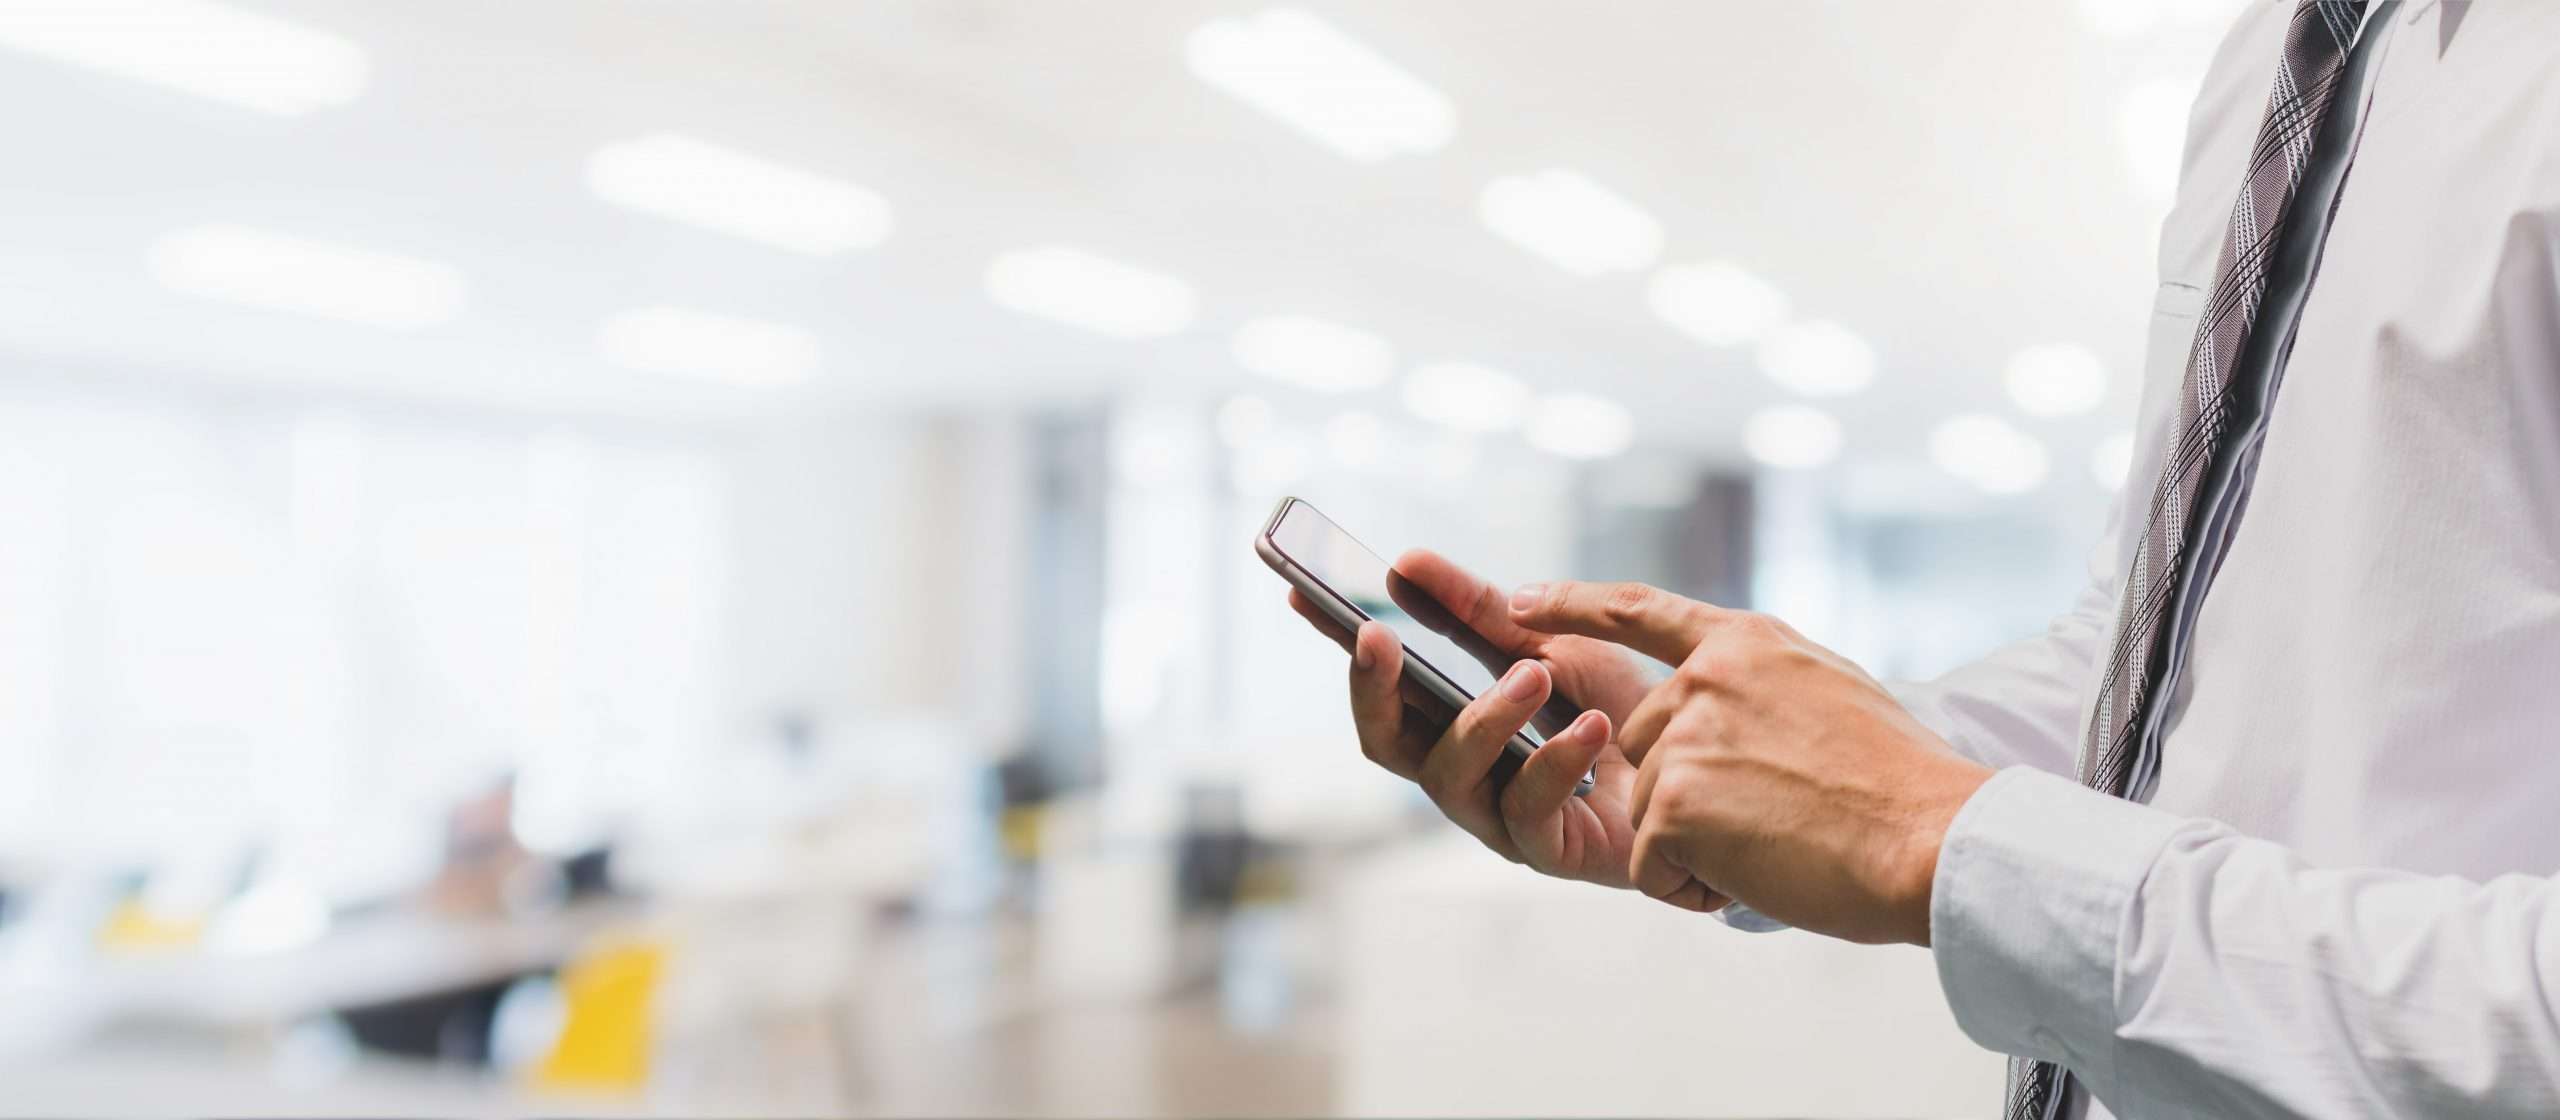 The Rise of Mobile: 3 Reasons B2B Sales Must Adapt